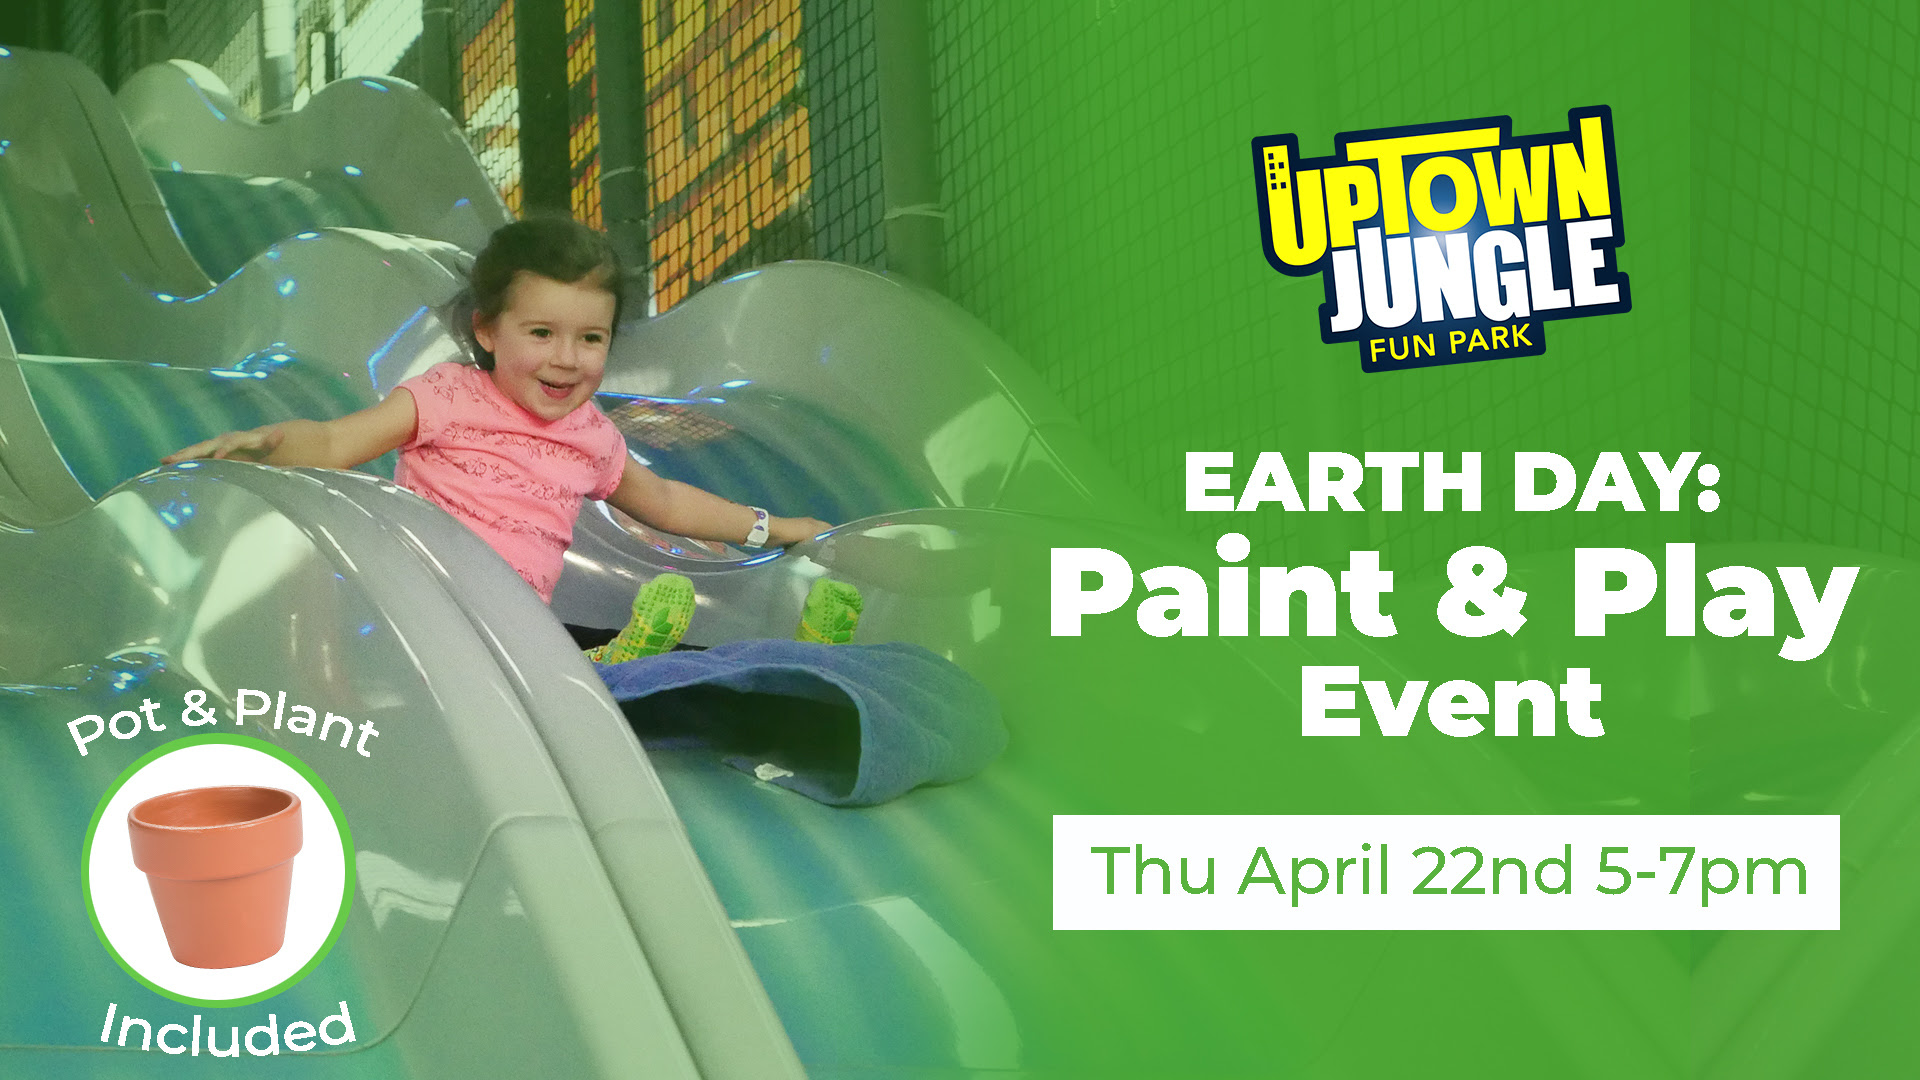 Uptown Jungle events Earth Day paint and play